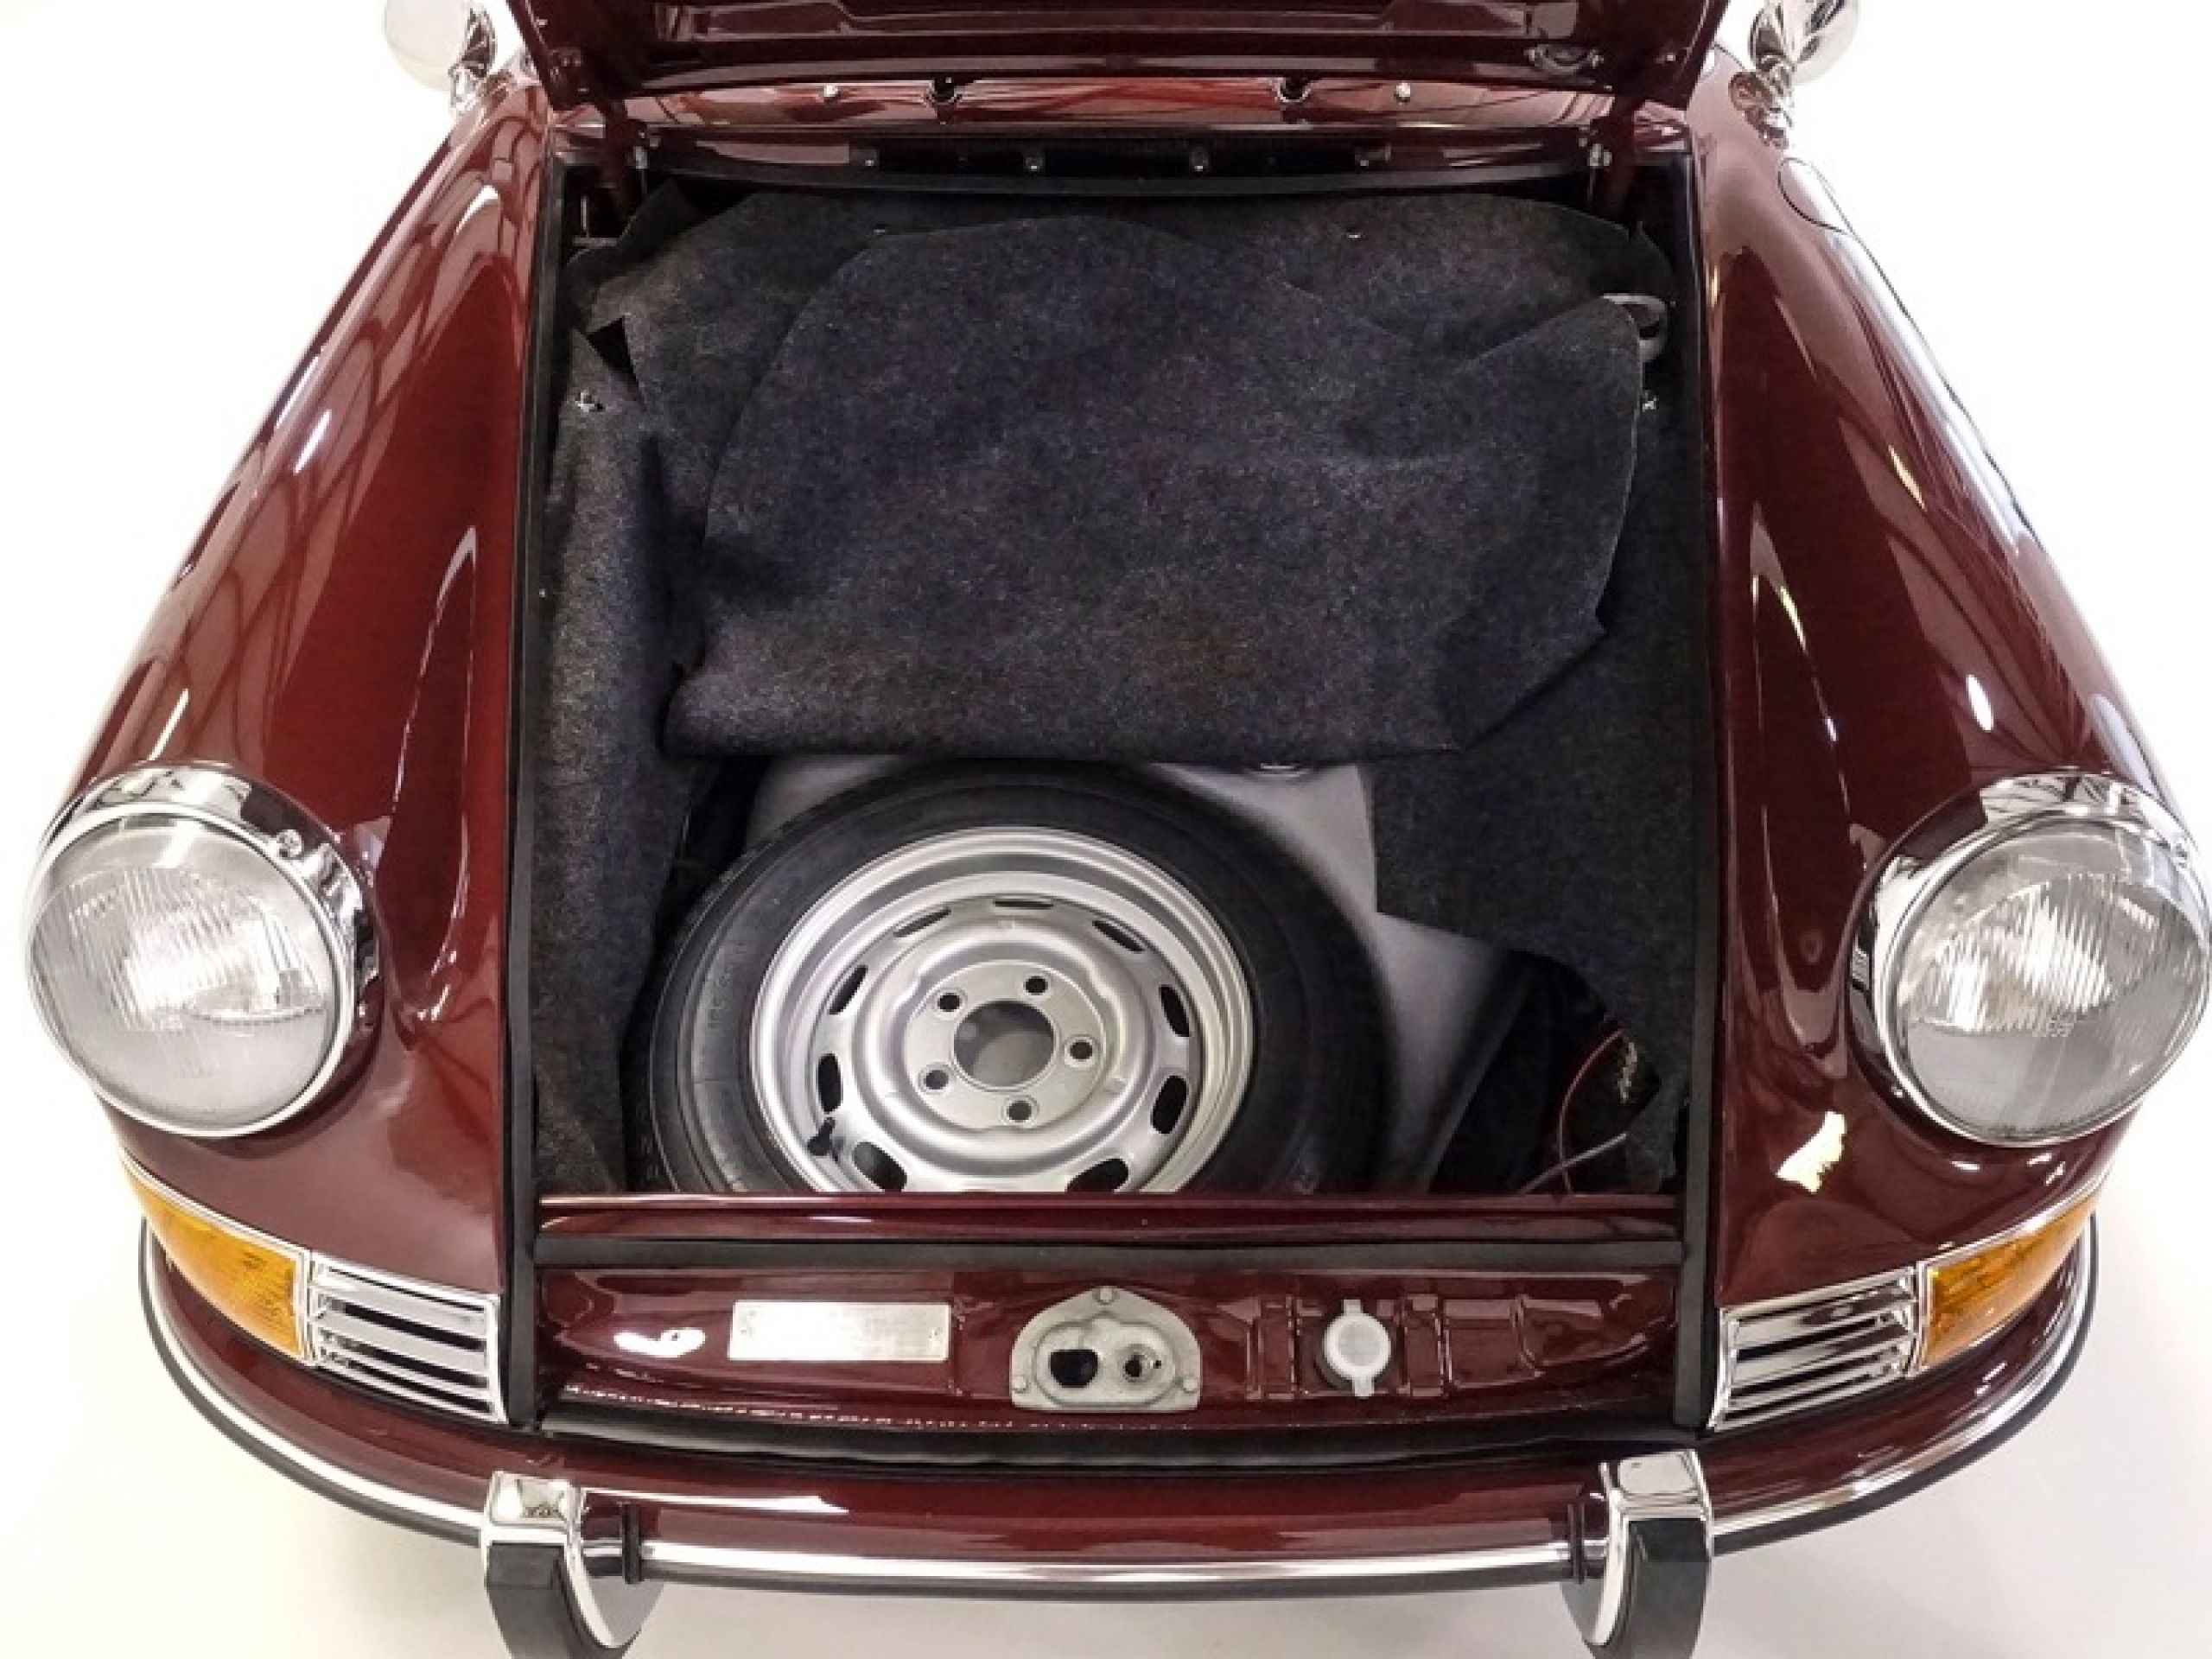 1969 Porsche 912 Coupe by Karmann